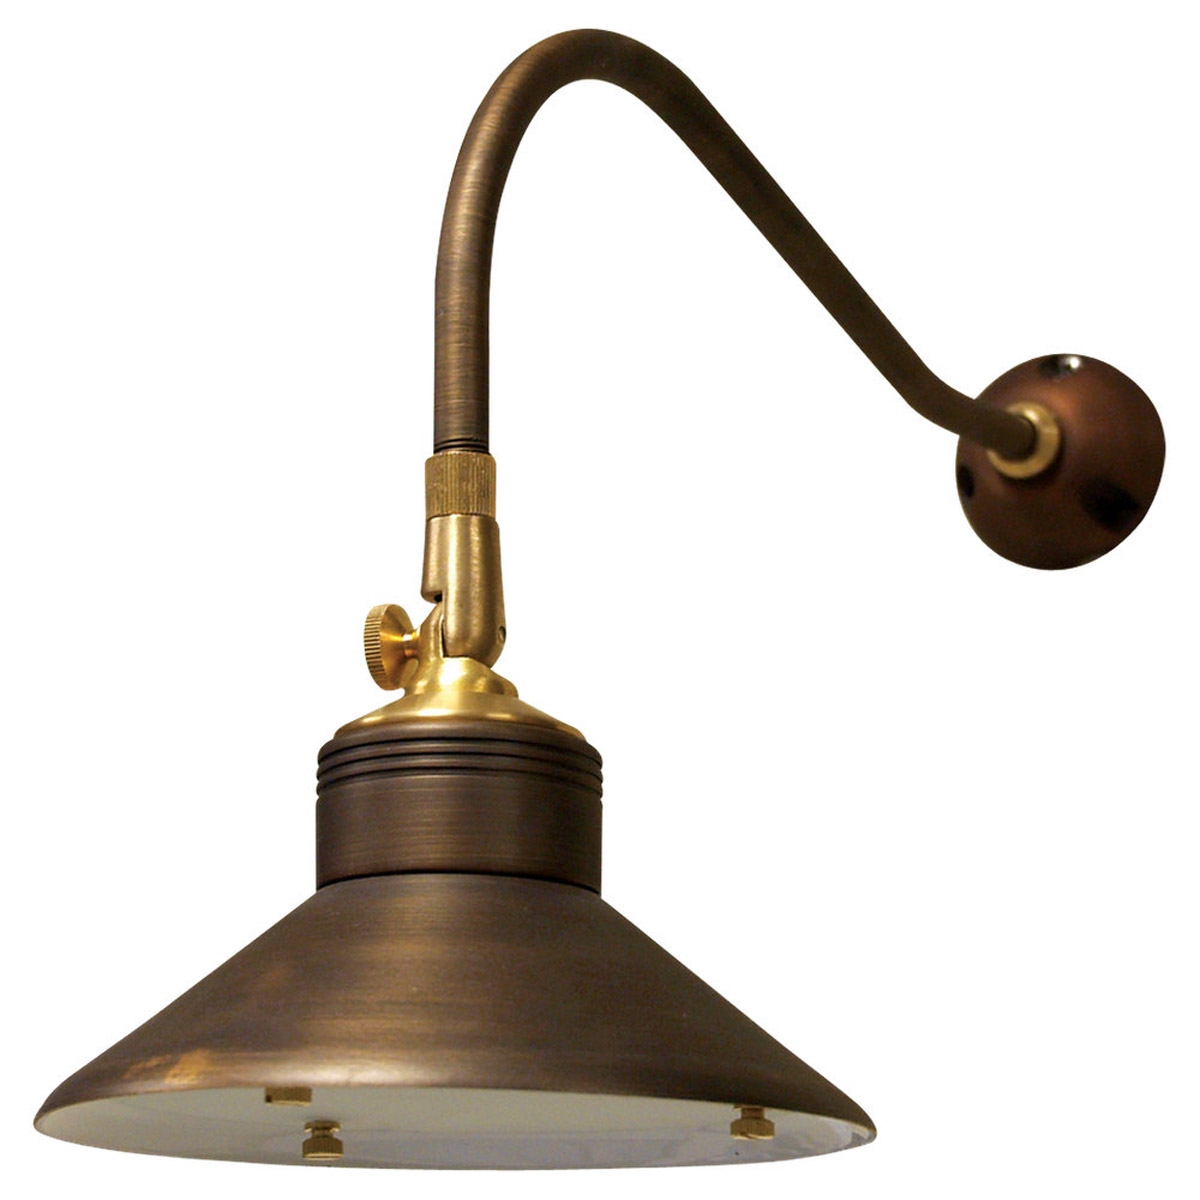 Sea Gull Lighting Signature 1 Light Landscape Light in Weathered Brass 91460-147 photo